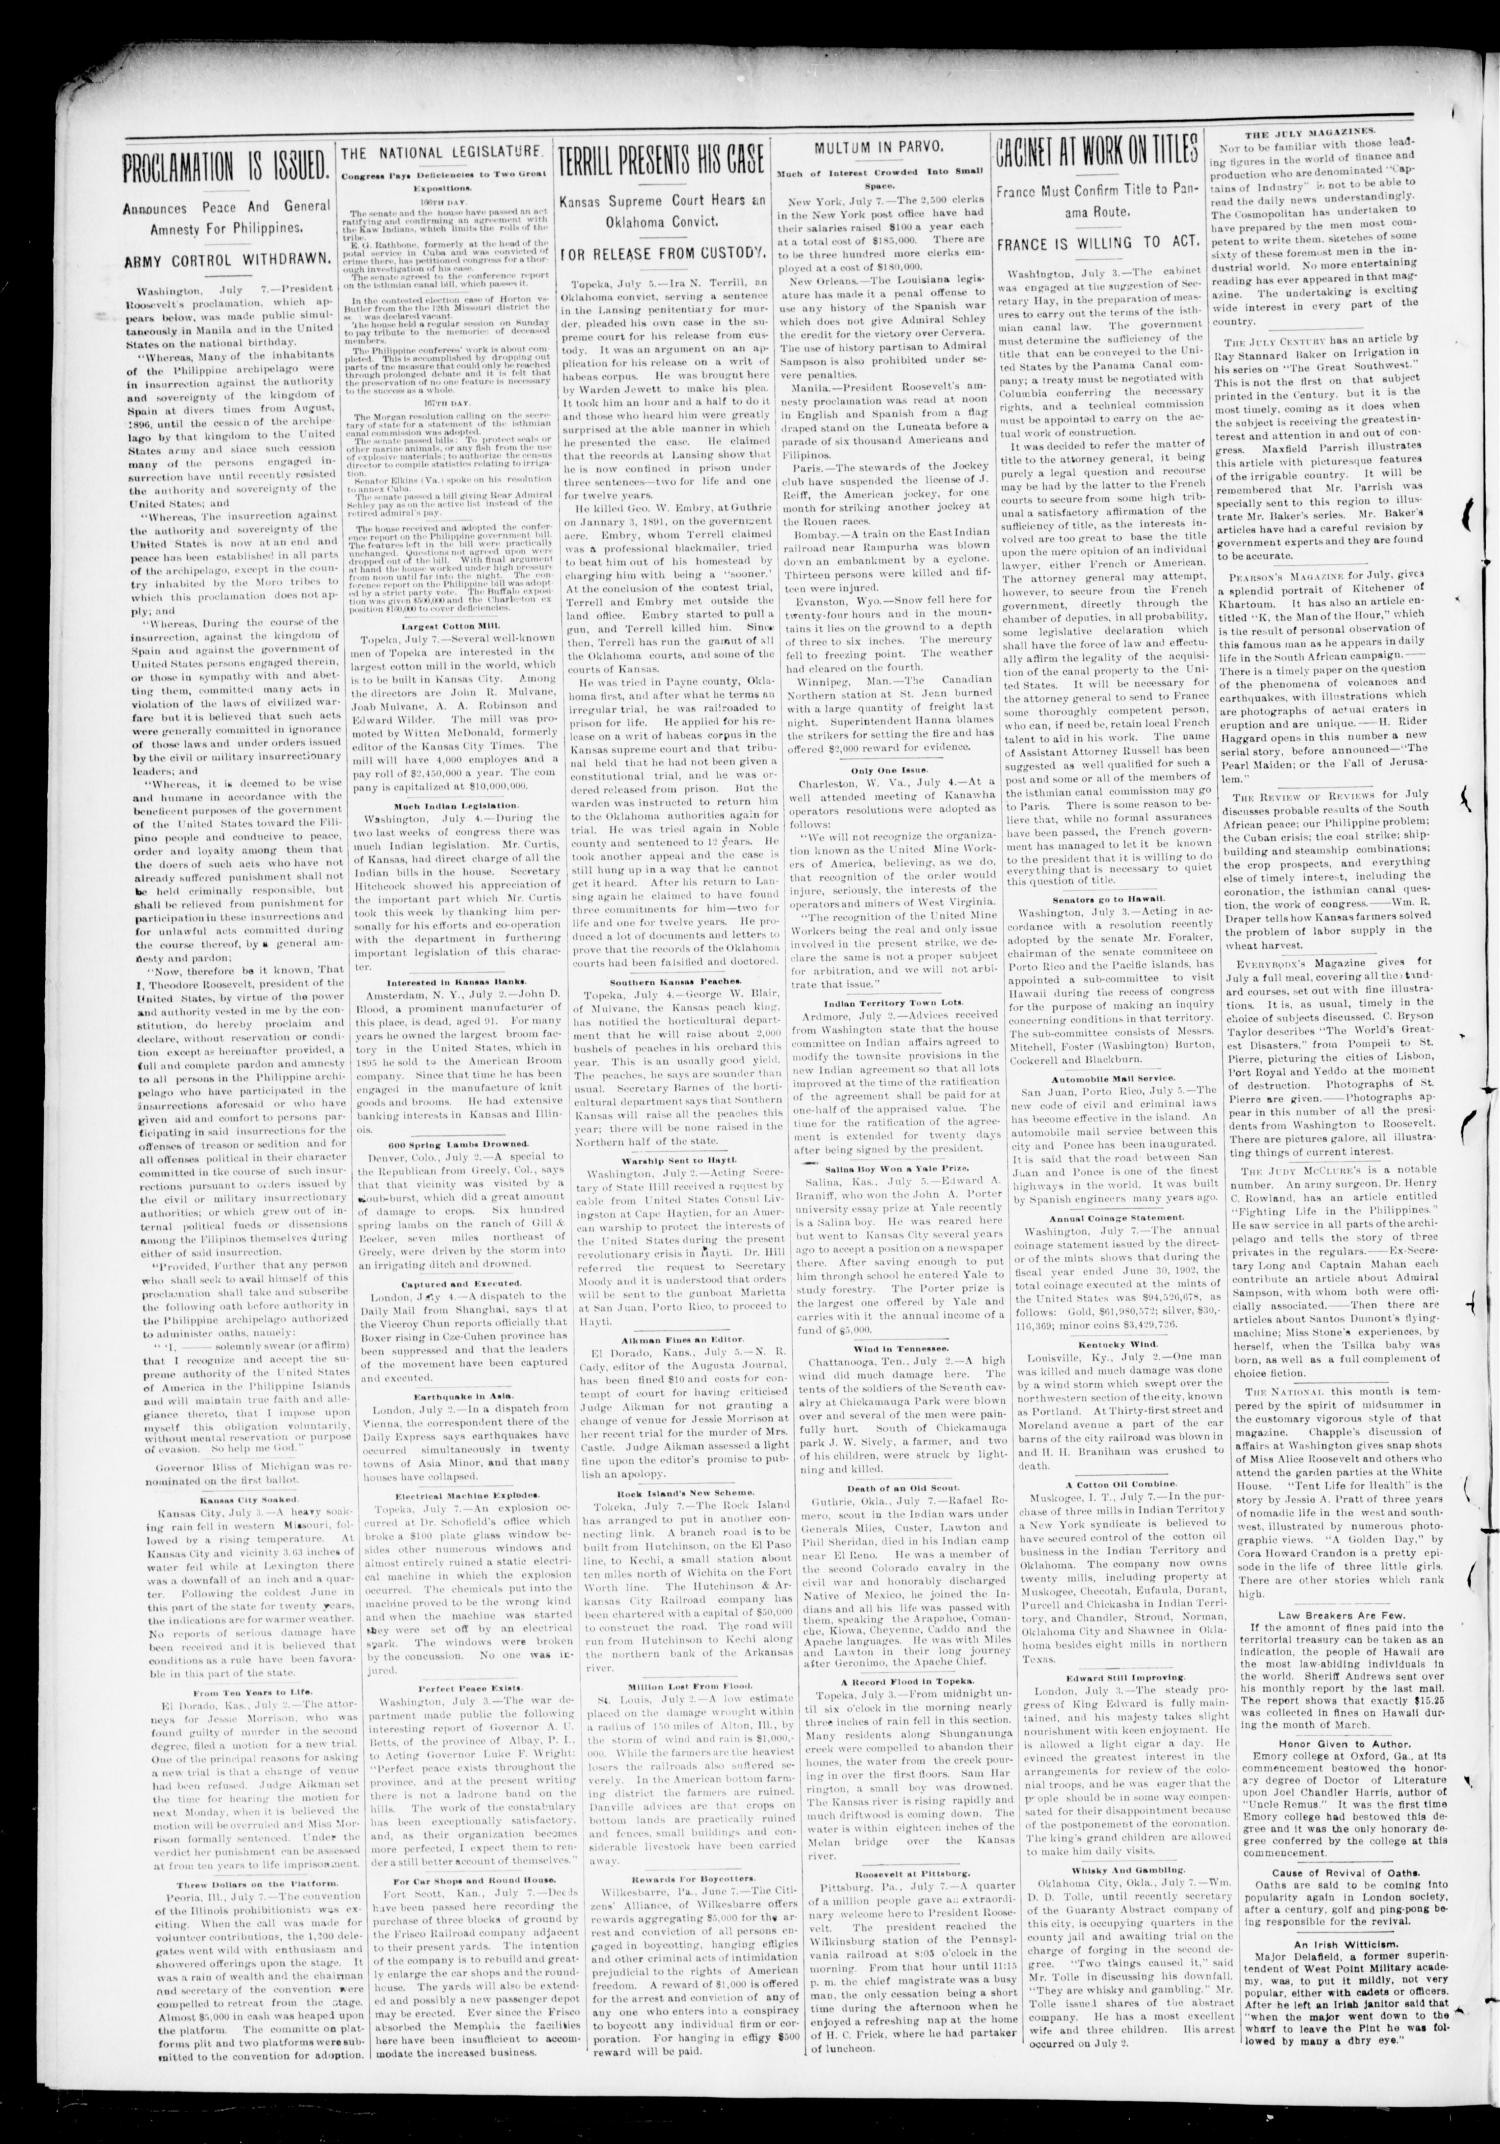 The Press-Democrat. (Hennessey, Okla.), Vol. 10, No. 41, Ed. 1 Friday, July 11, 1902                                                                                                      [Sequence #]: 2 of 8